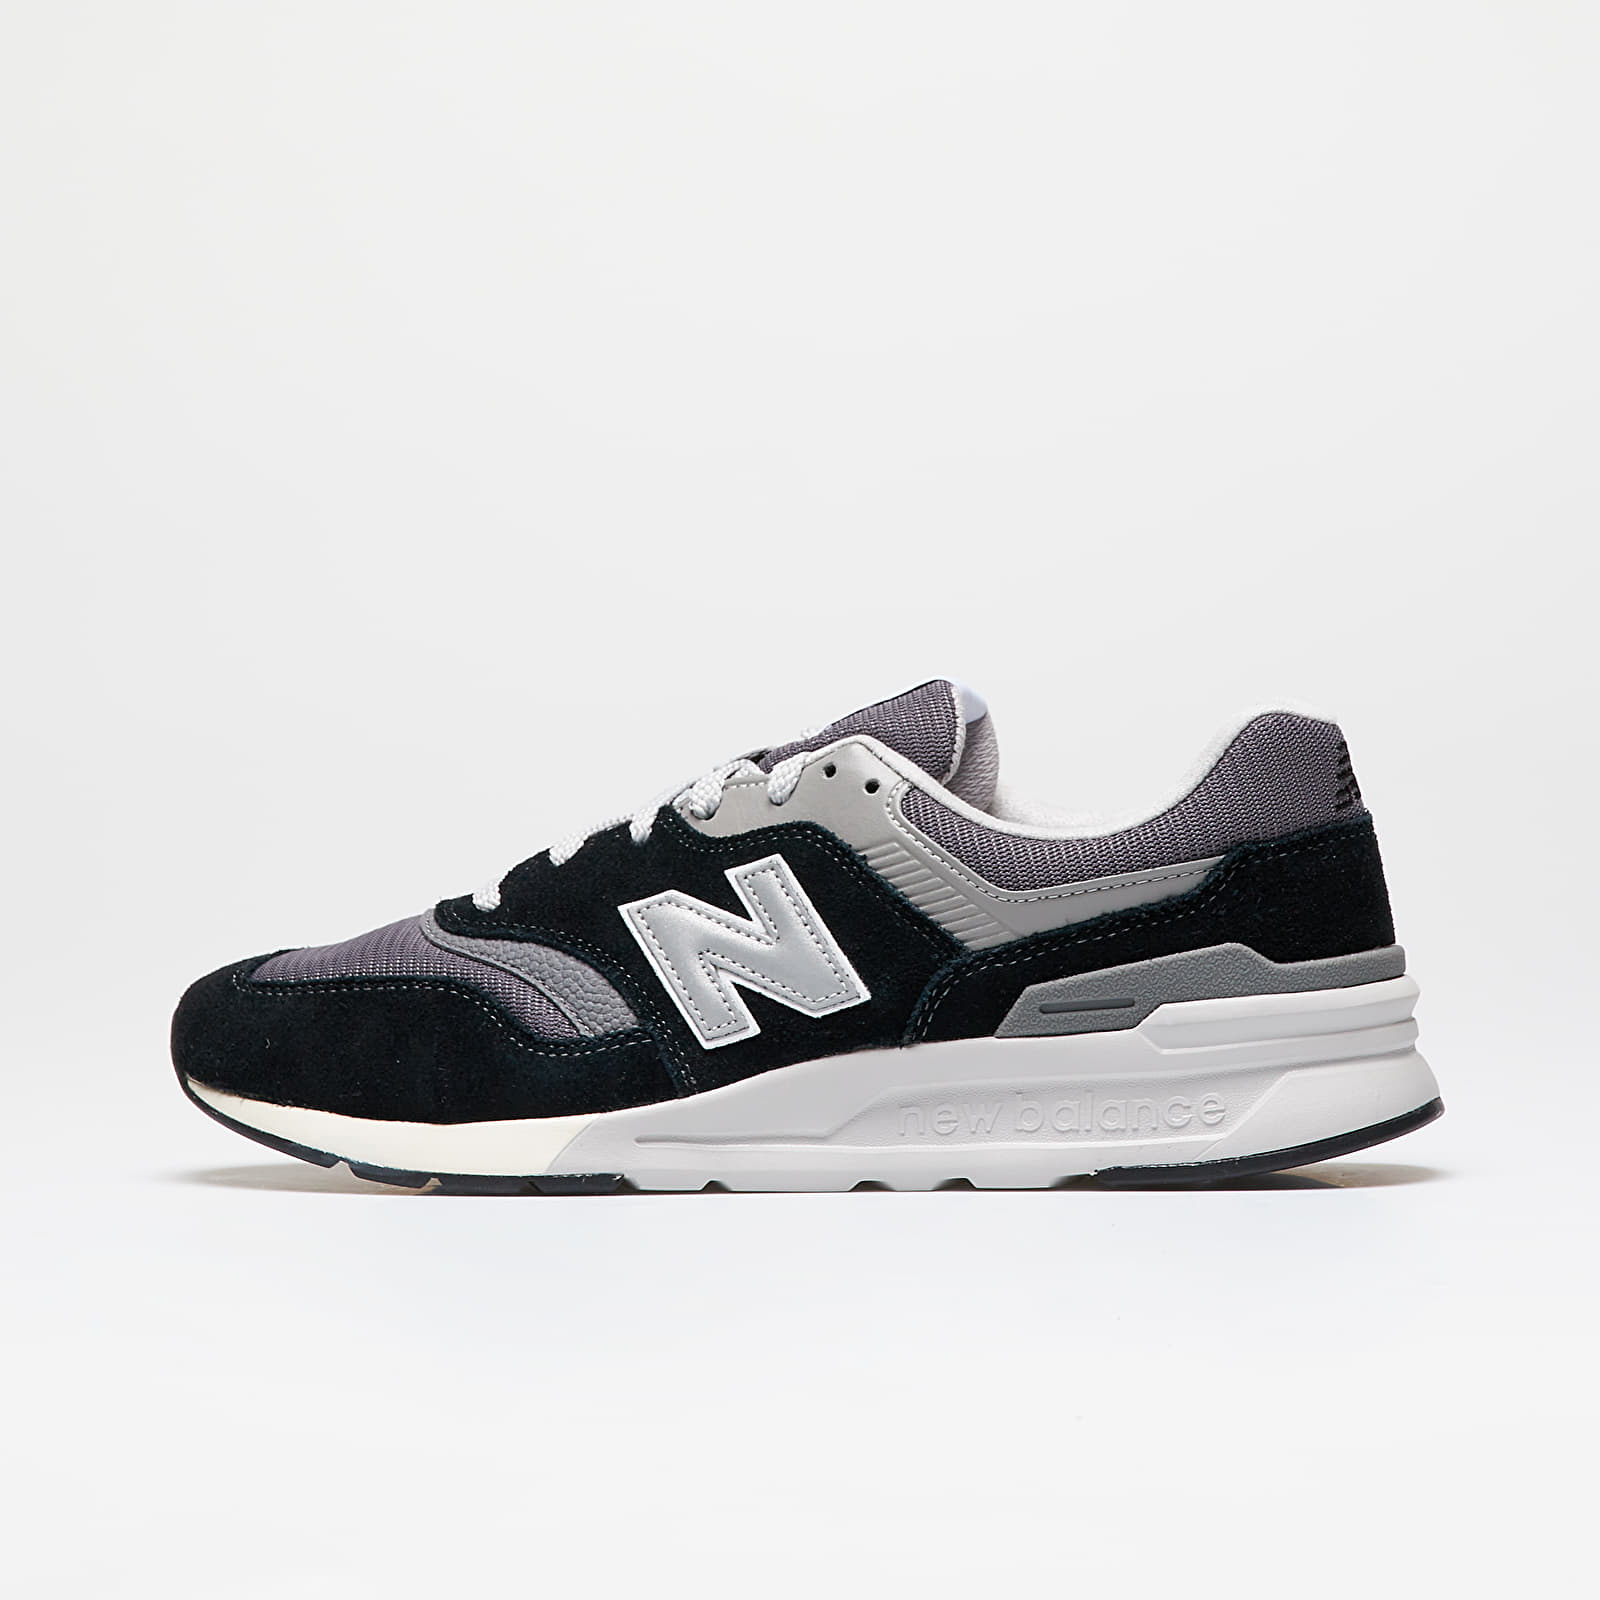 Chaussures et baskets homme New Balance 997 Black/ Gray